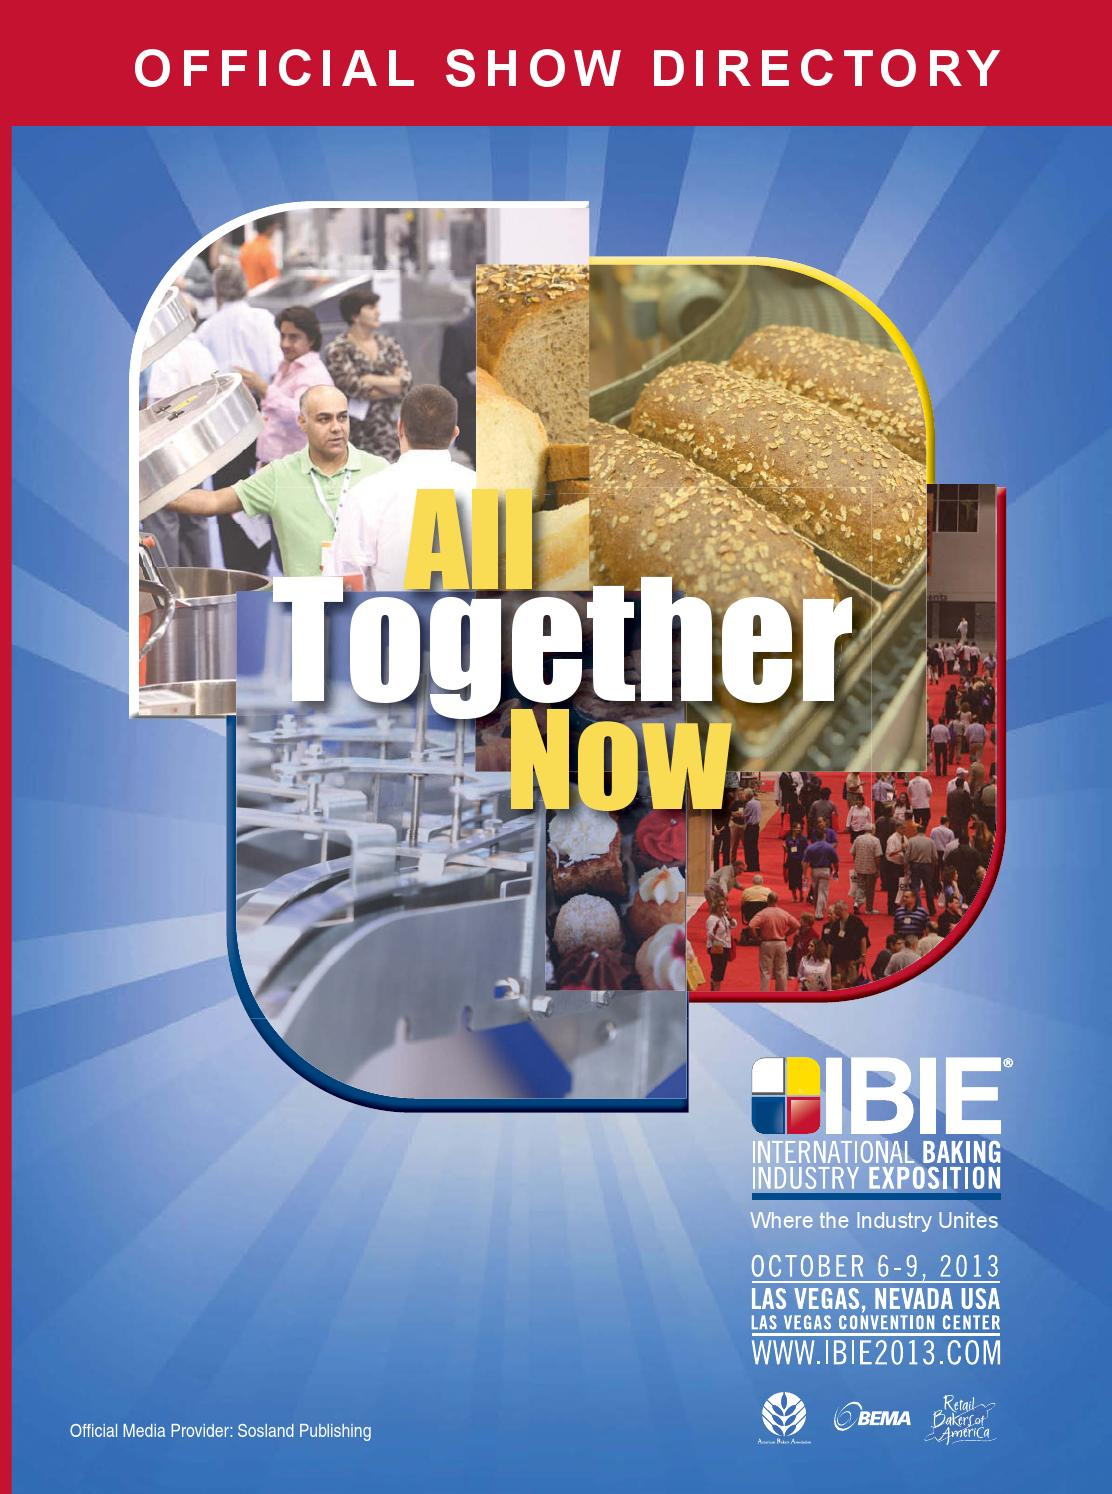 IBIE 2013 Show Directory by Marketing Design Group - issuu